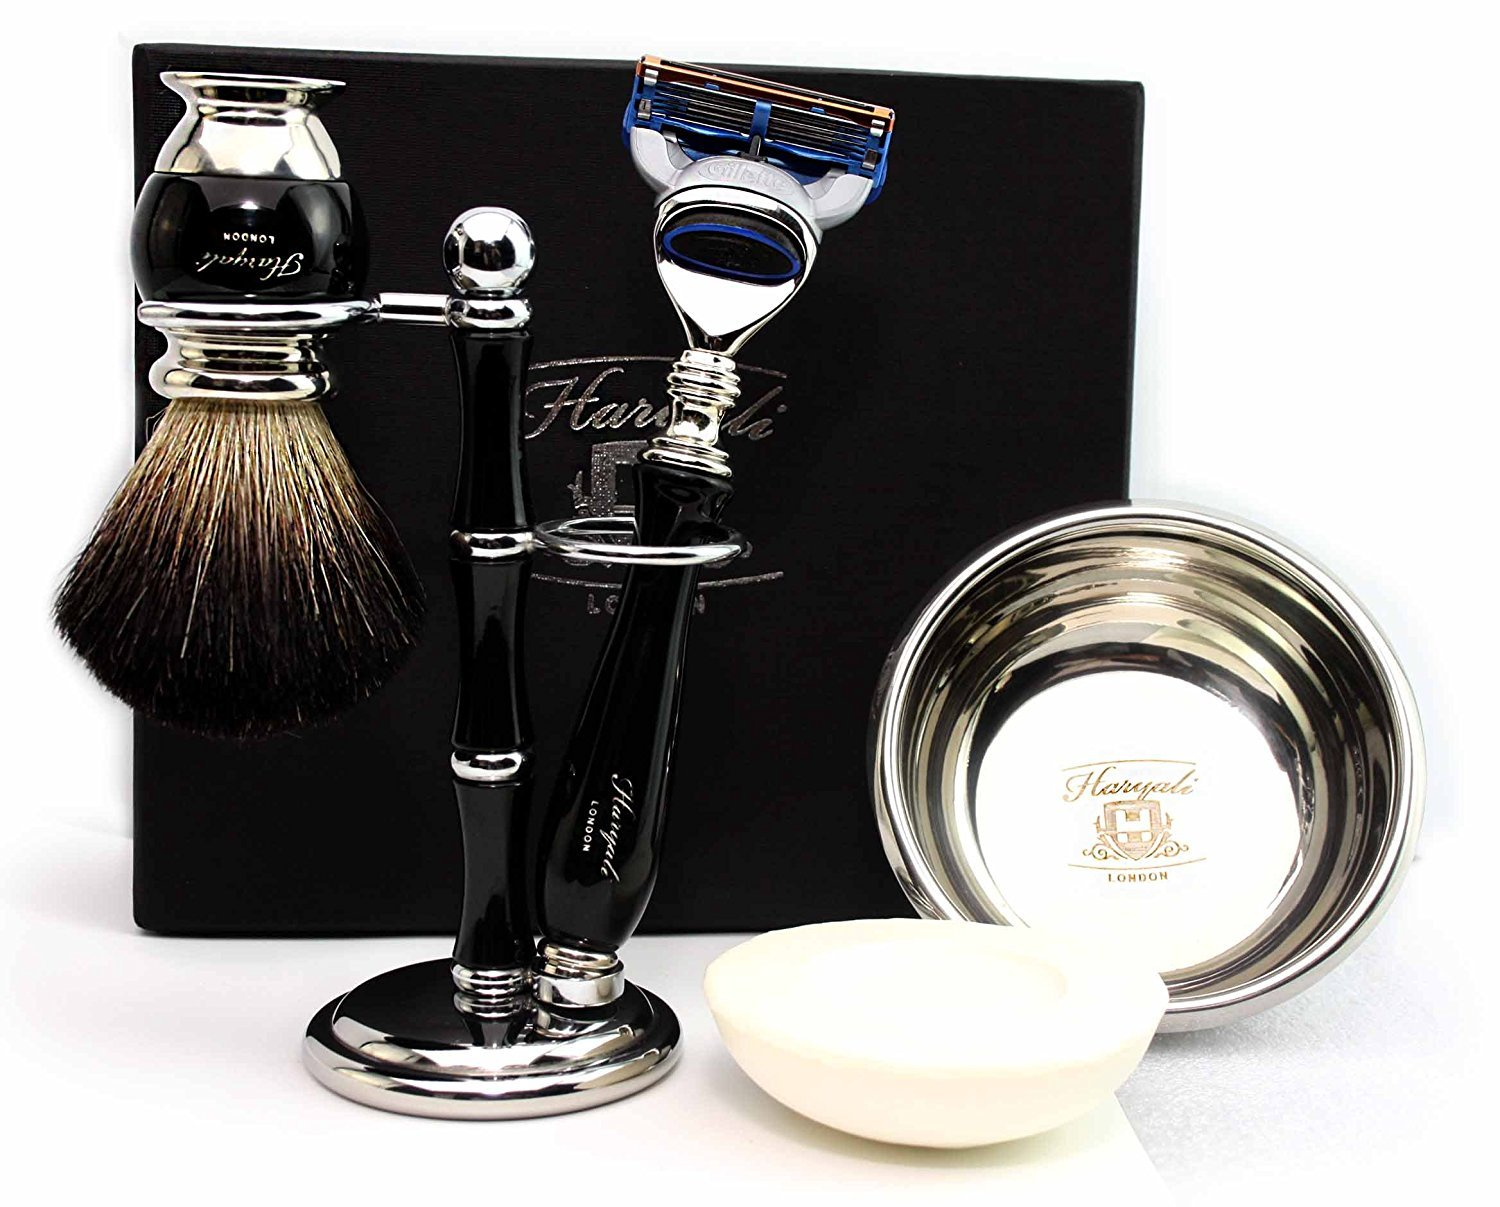 100% Hand Made Shaving Set for Men's.Ideal Gift This Christmas.Set Includes Pure Black Badger Hair Brush, 3 Razors To Choose,Shaving Bowl with Soap and Brush Holder. (Gillette Fusion Razor)